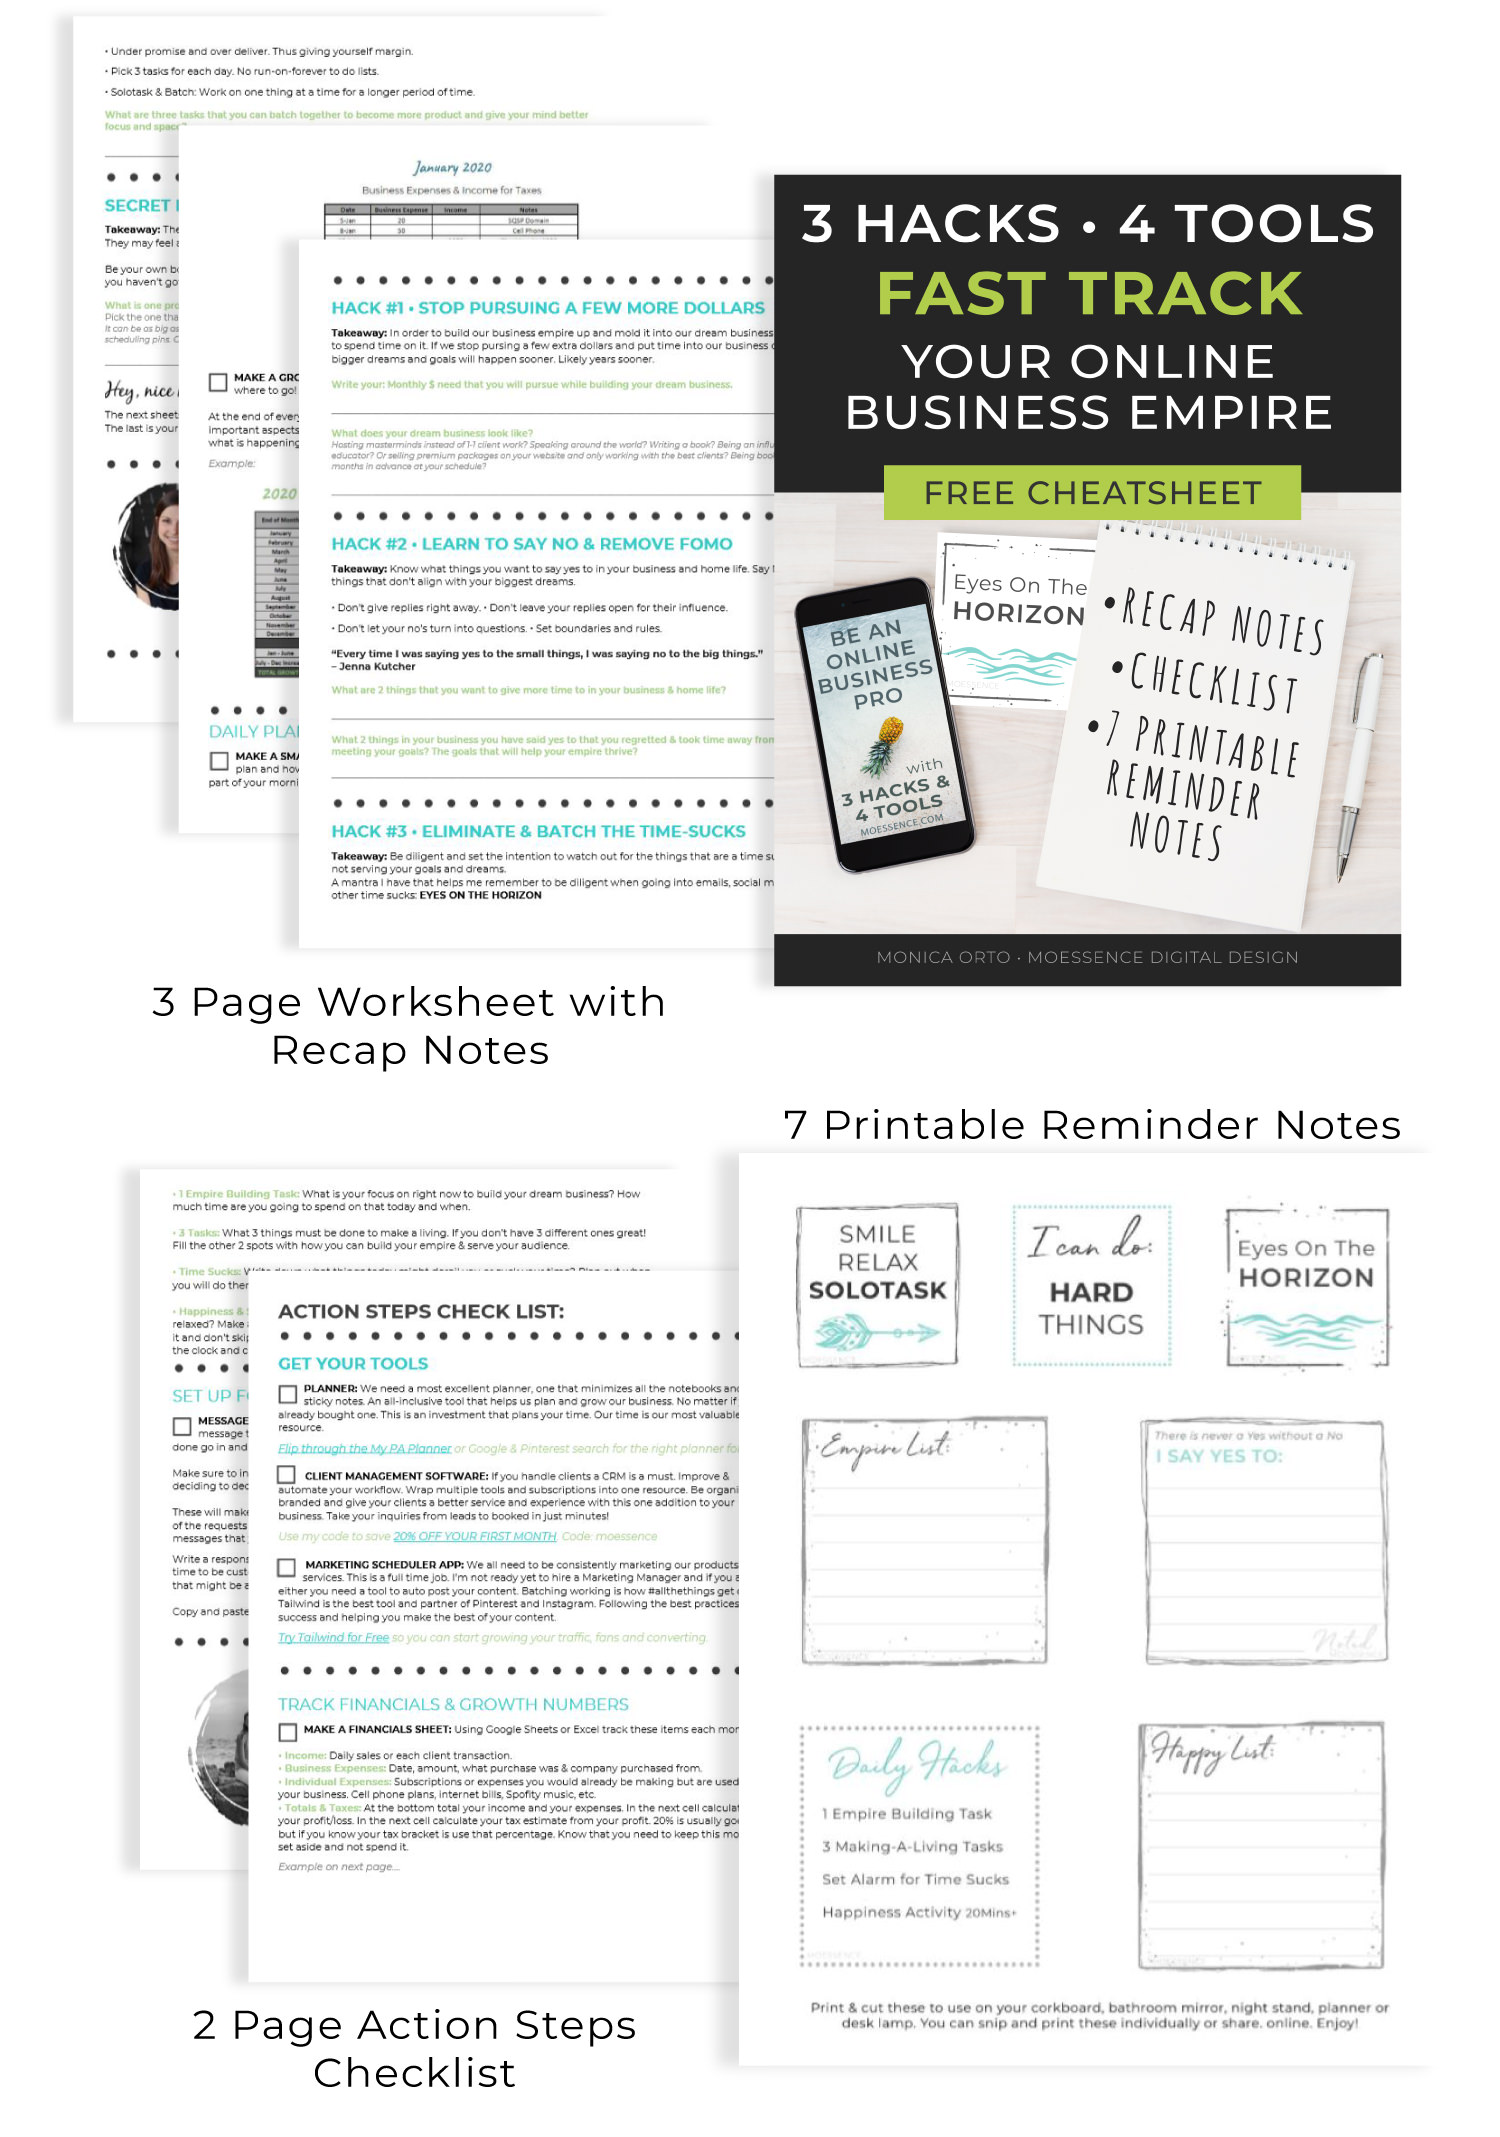 Online-business-hacks-and-tools-free-download-worksheet-checklist-and-grahic-sticky-notes-e-book.jpg